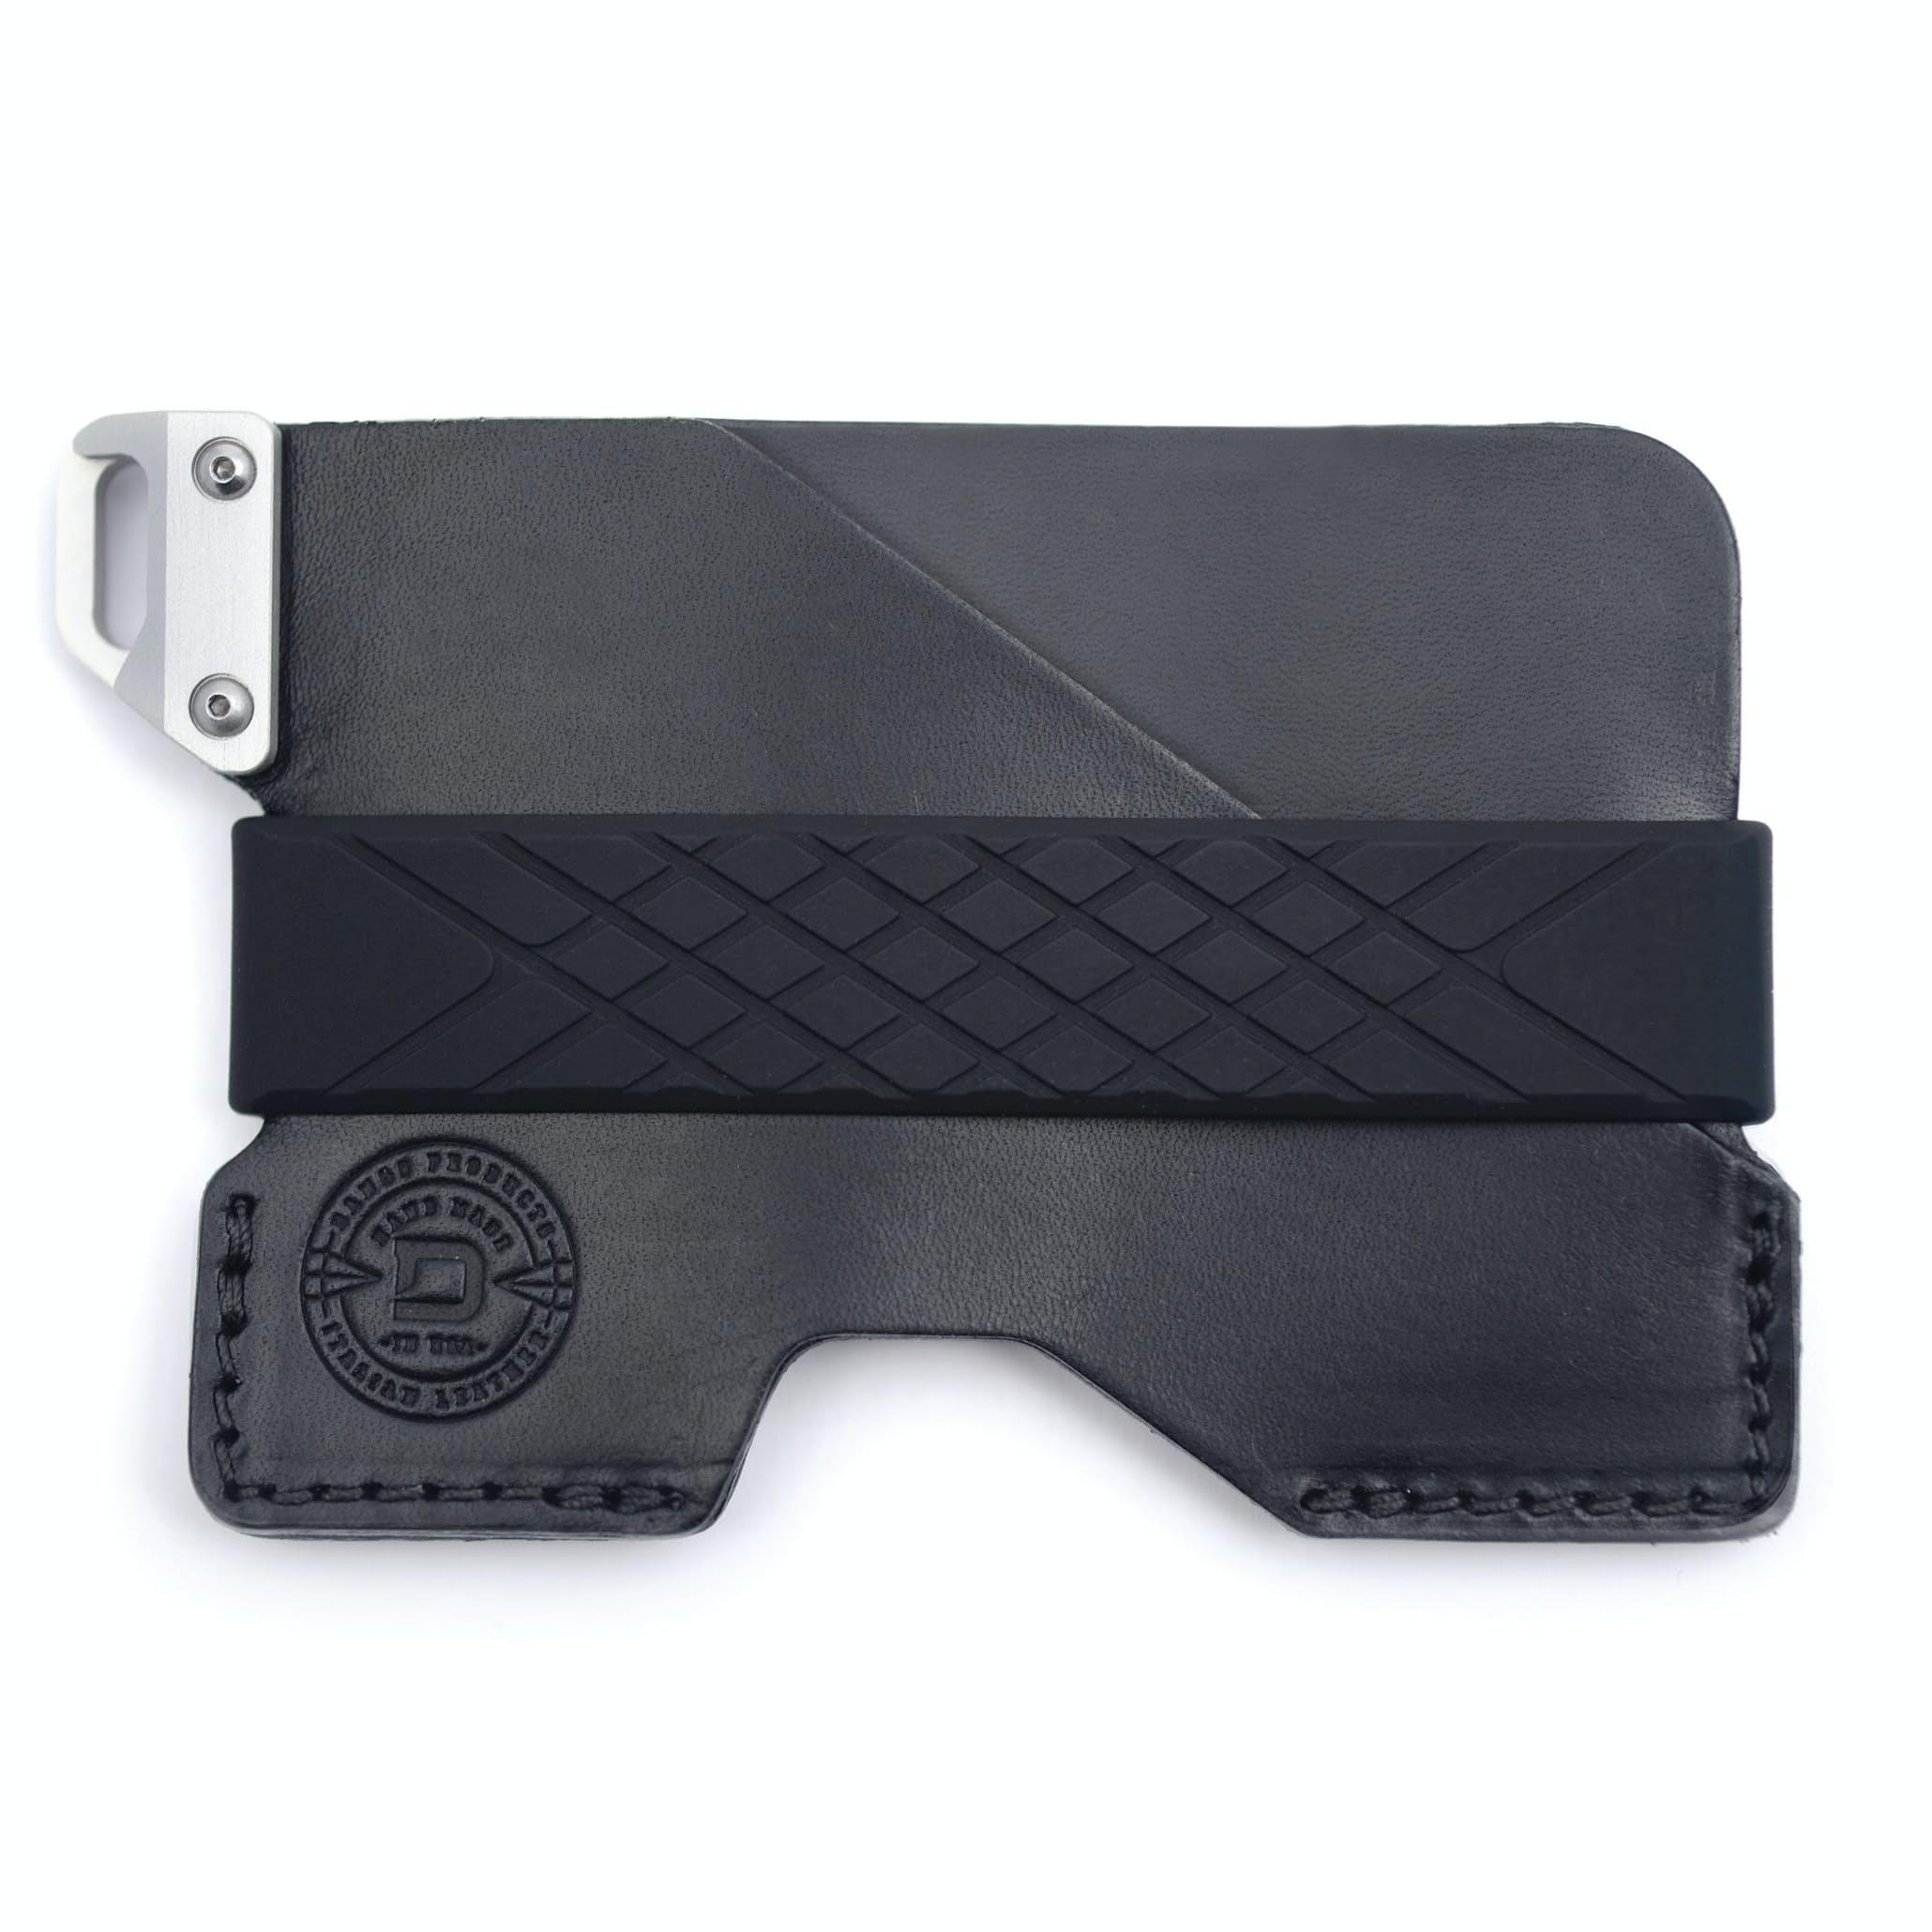 Epx2js9vry dango products c01 civilian wallet 0 original